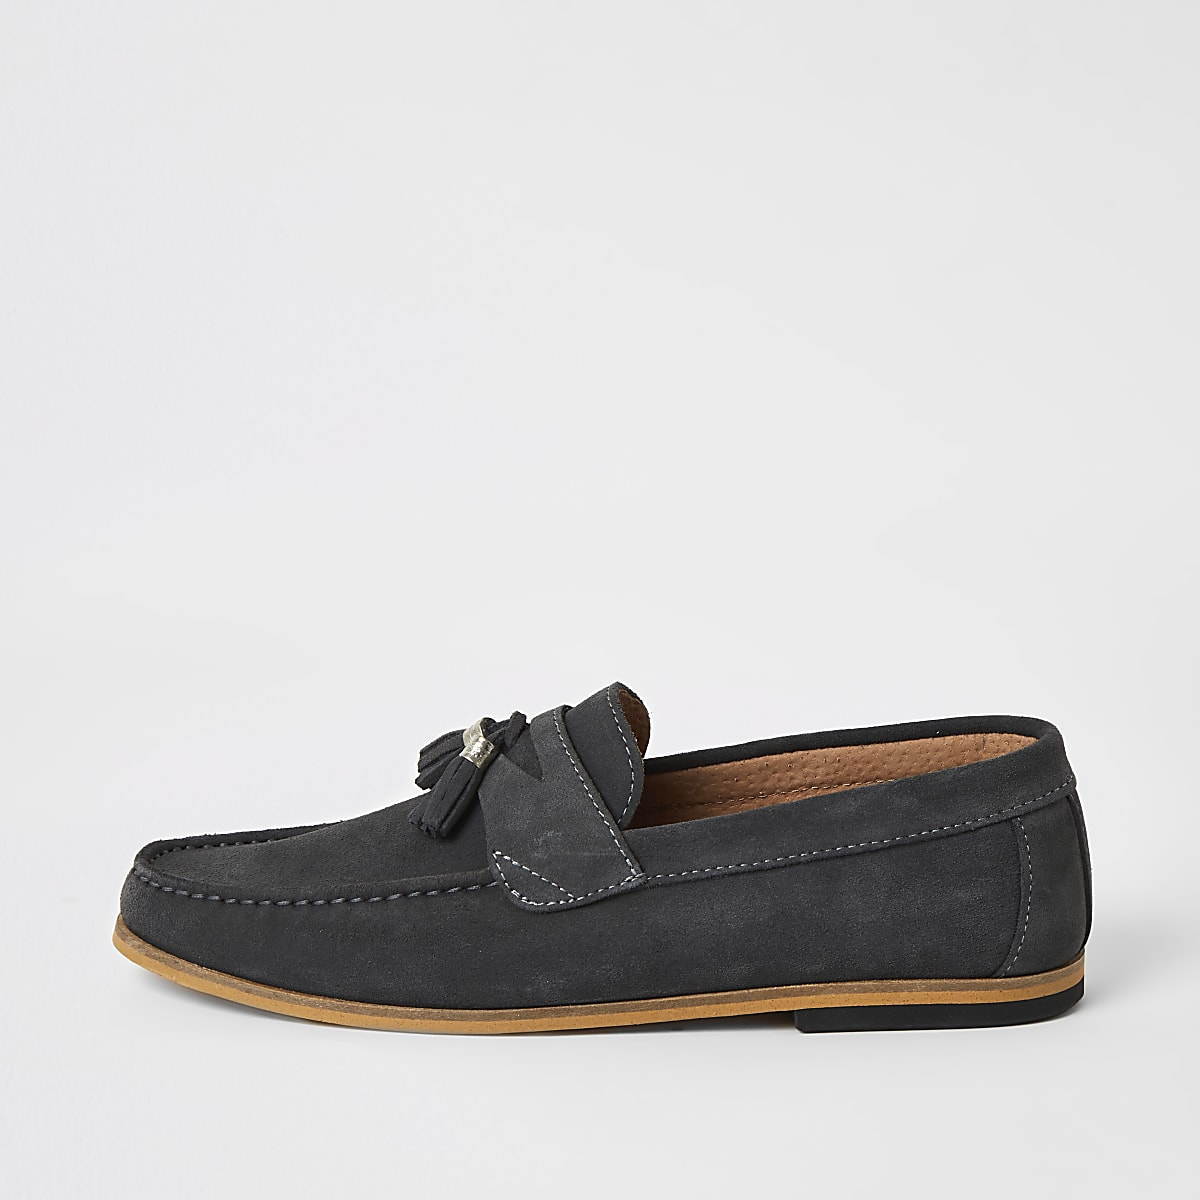 Burgundy suede woven tassel loafers